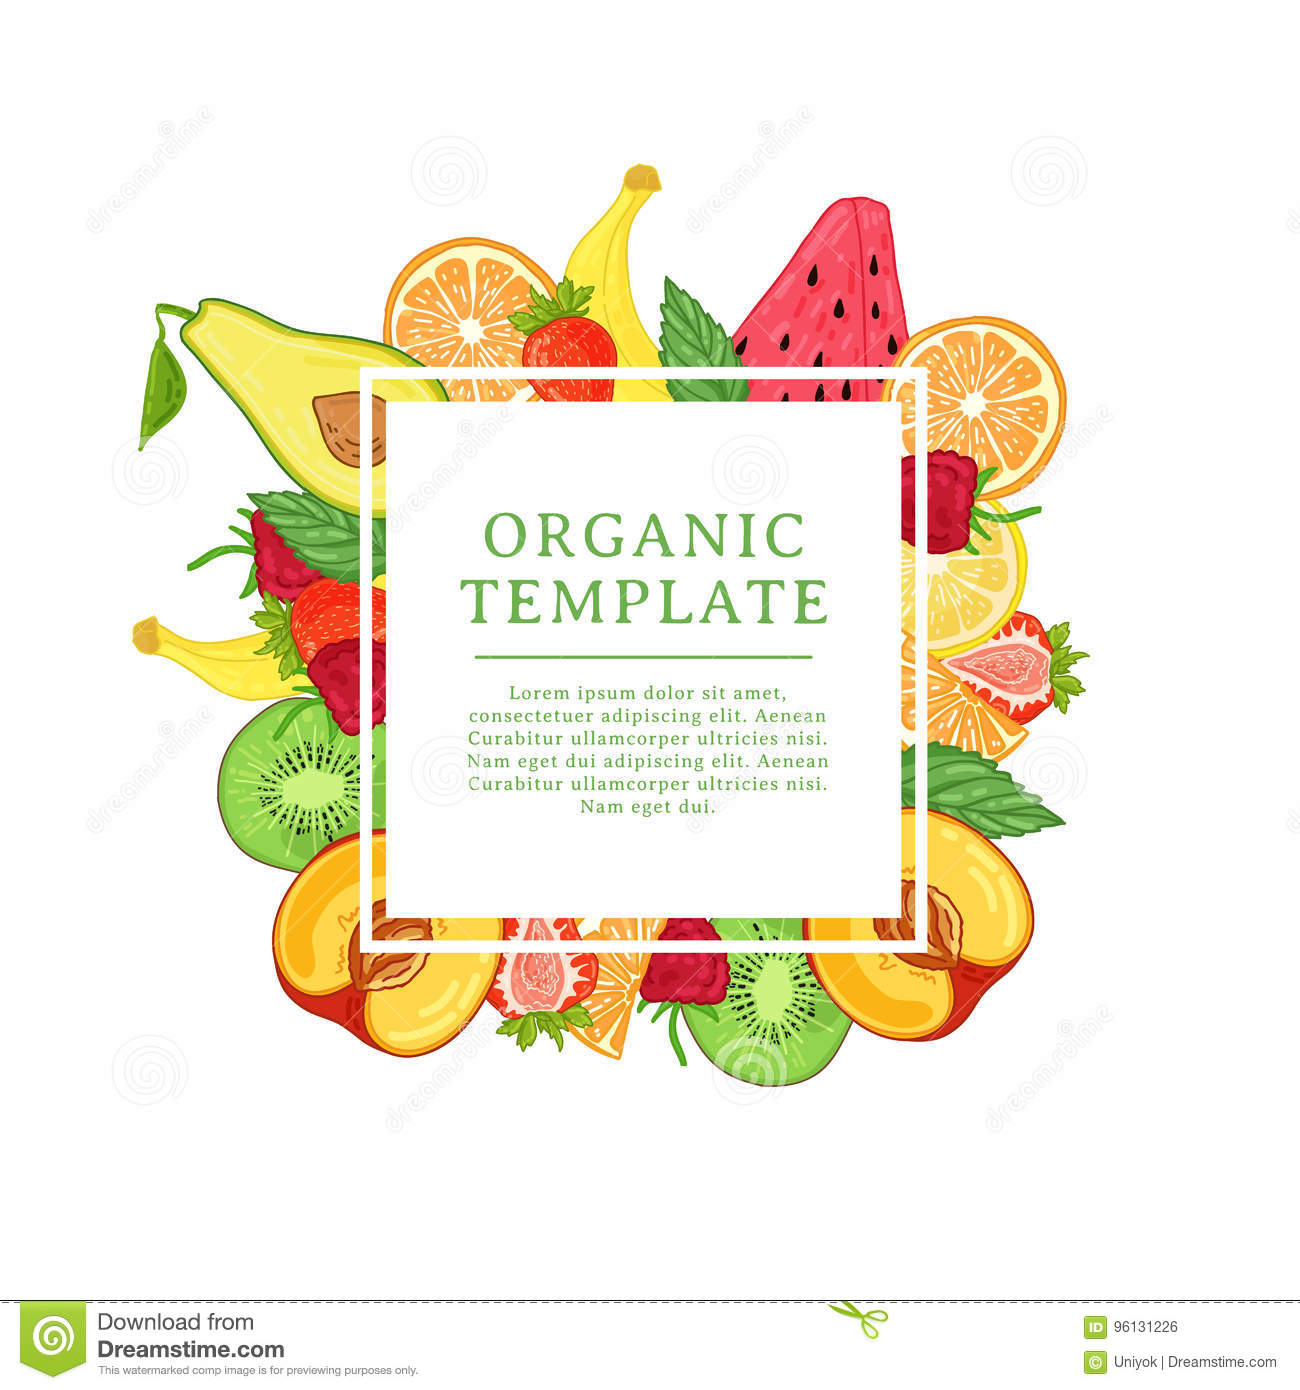 Banner design template with tropical fruit decoration. Square frame with the decor of healthy, juicy fruit. Card with